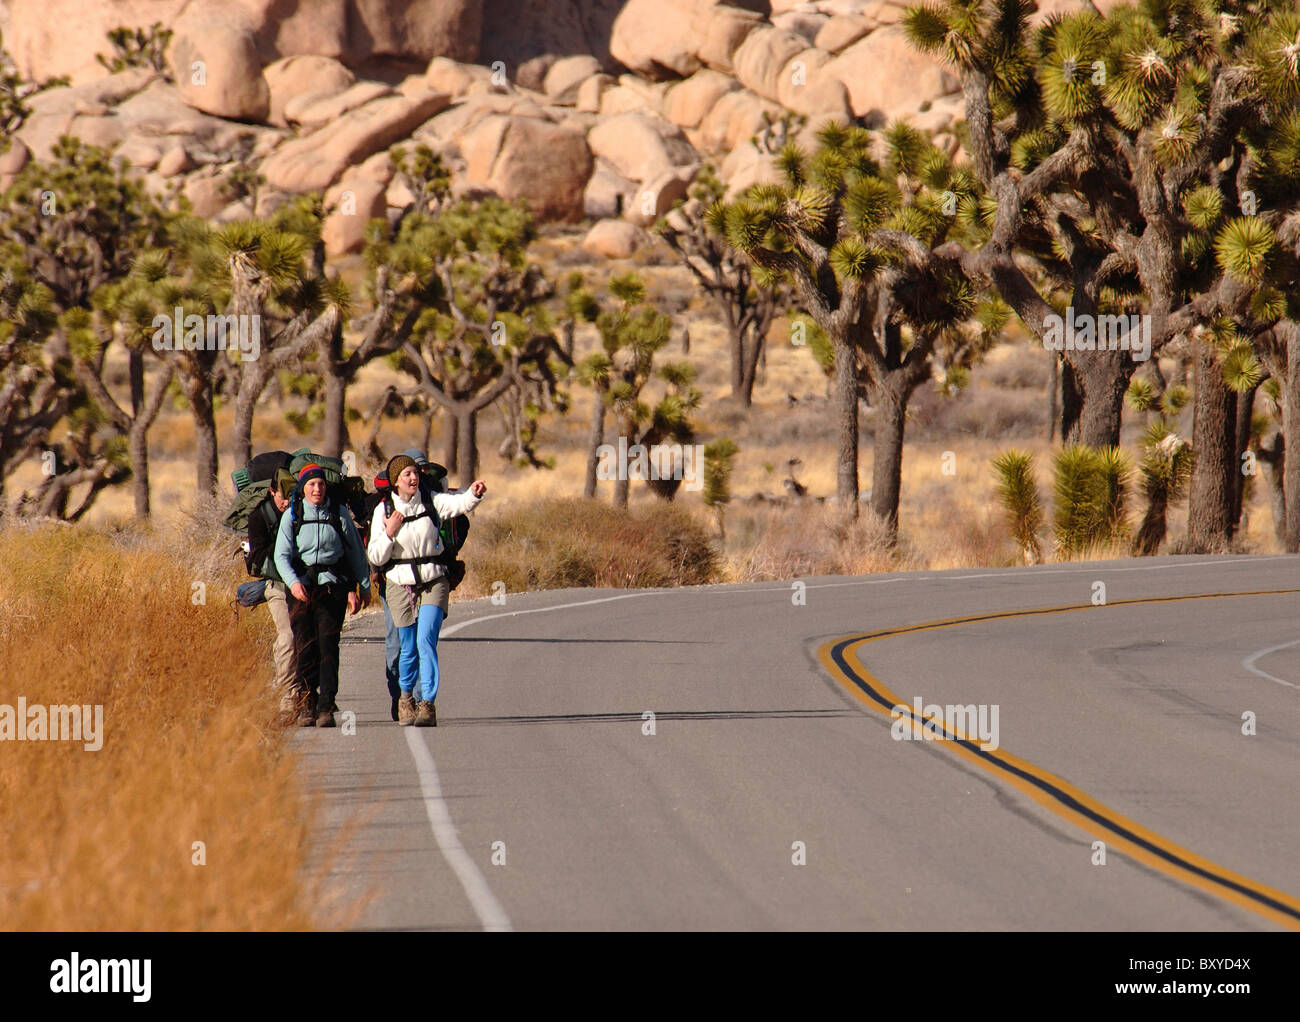 Backpackers on Highway through Joshua Tree Park, Yucca brevifolia, Mojave Desert, California, USA - Stock Image